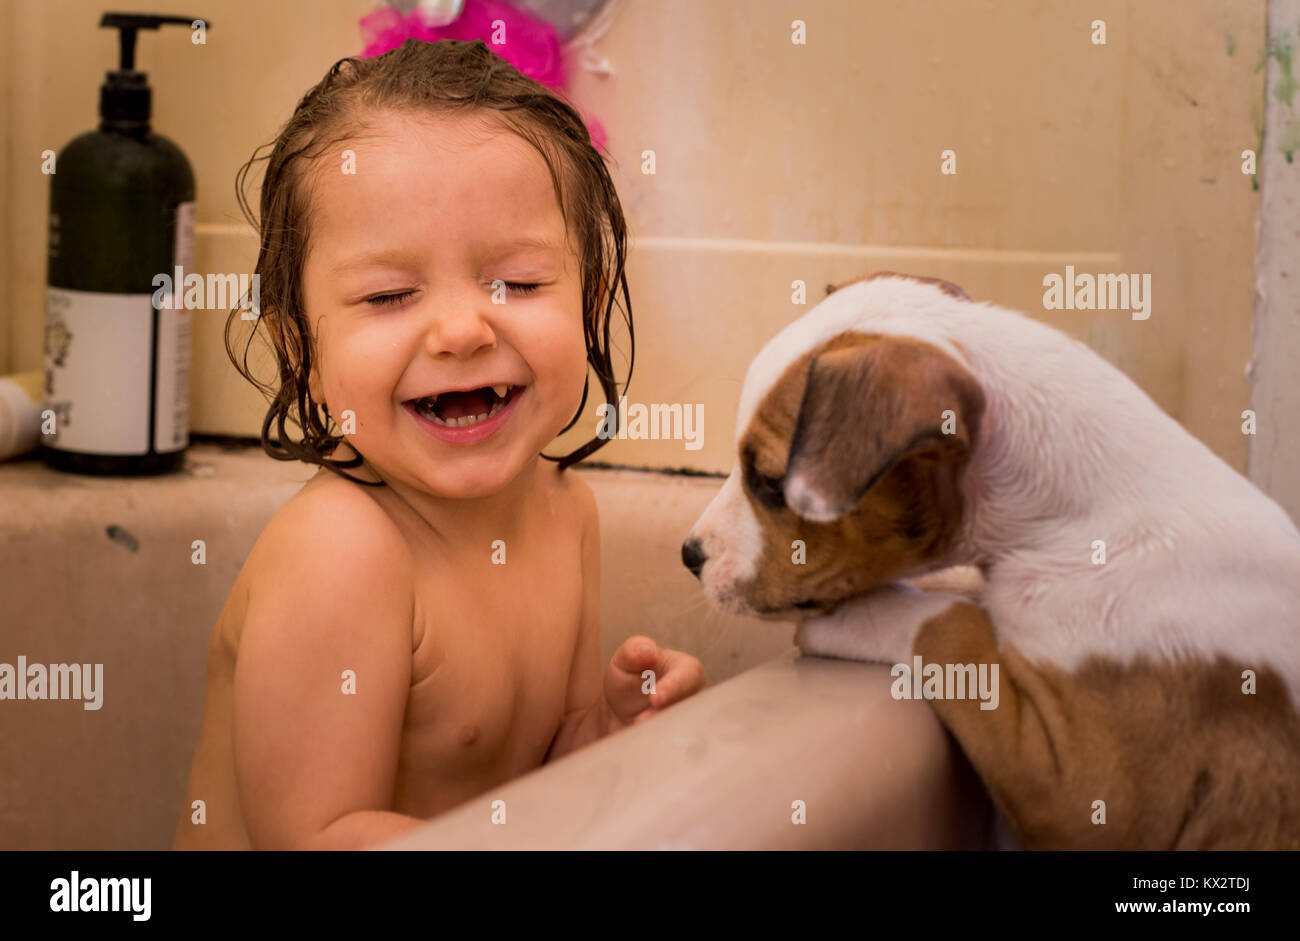 A toddler girl laughing in a bath tub with a puppy looking at her. - Stock Image